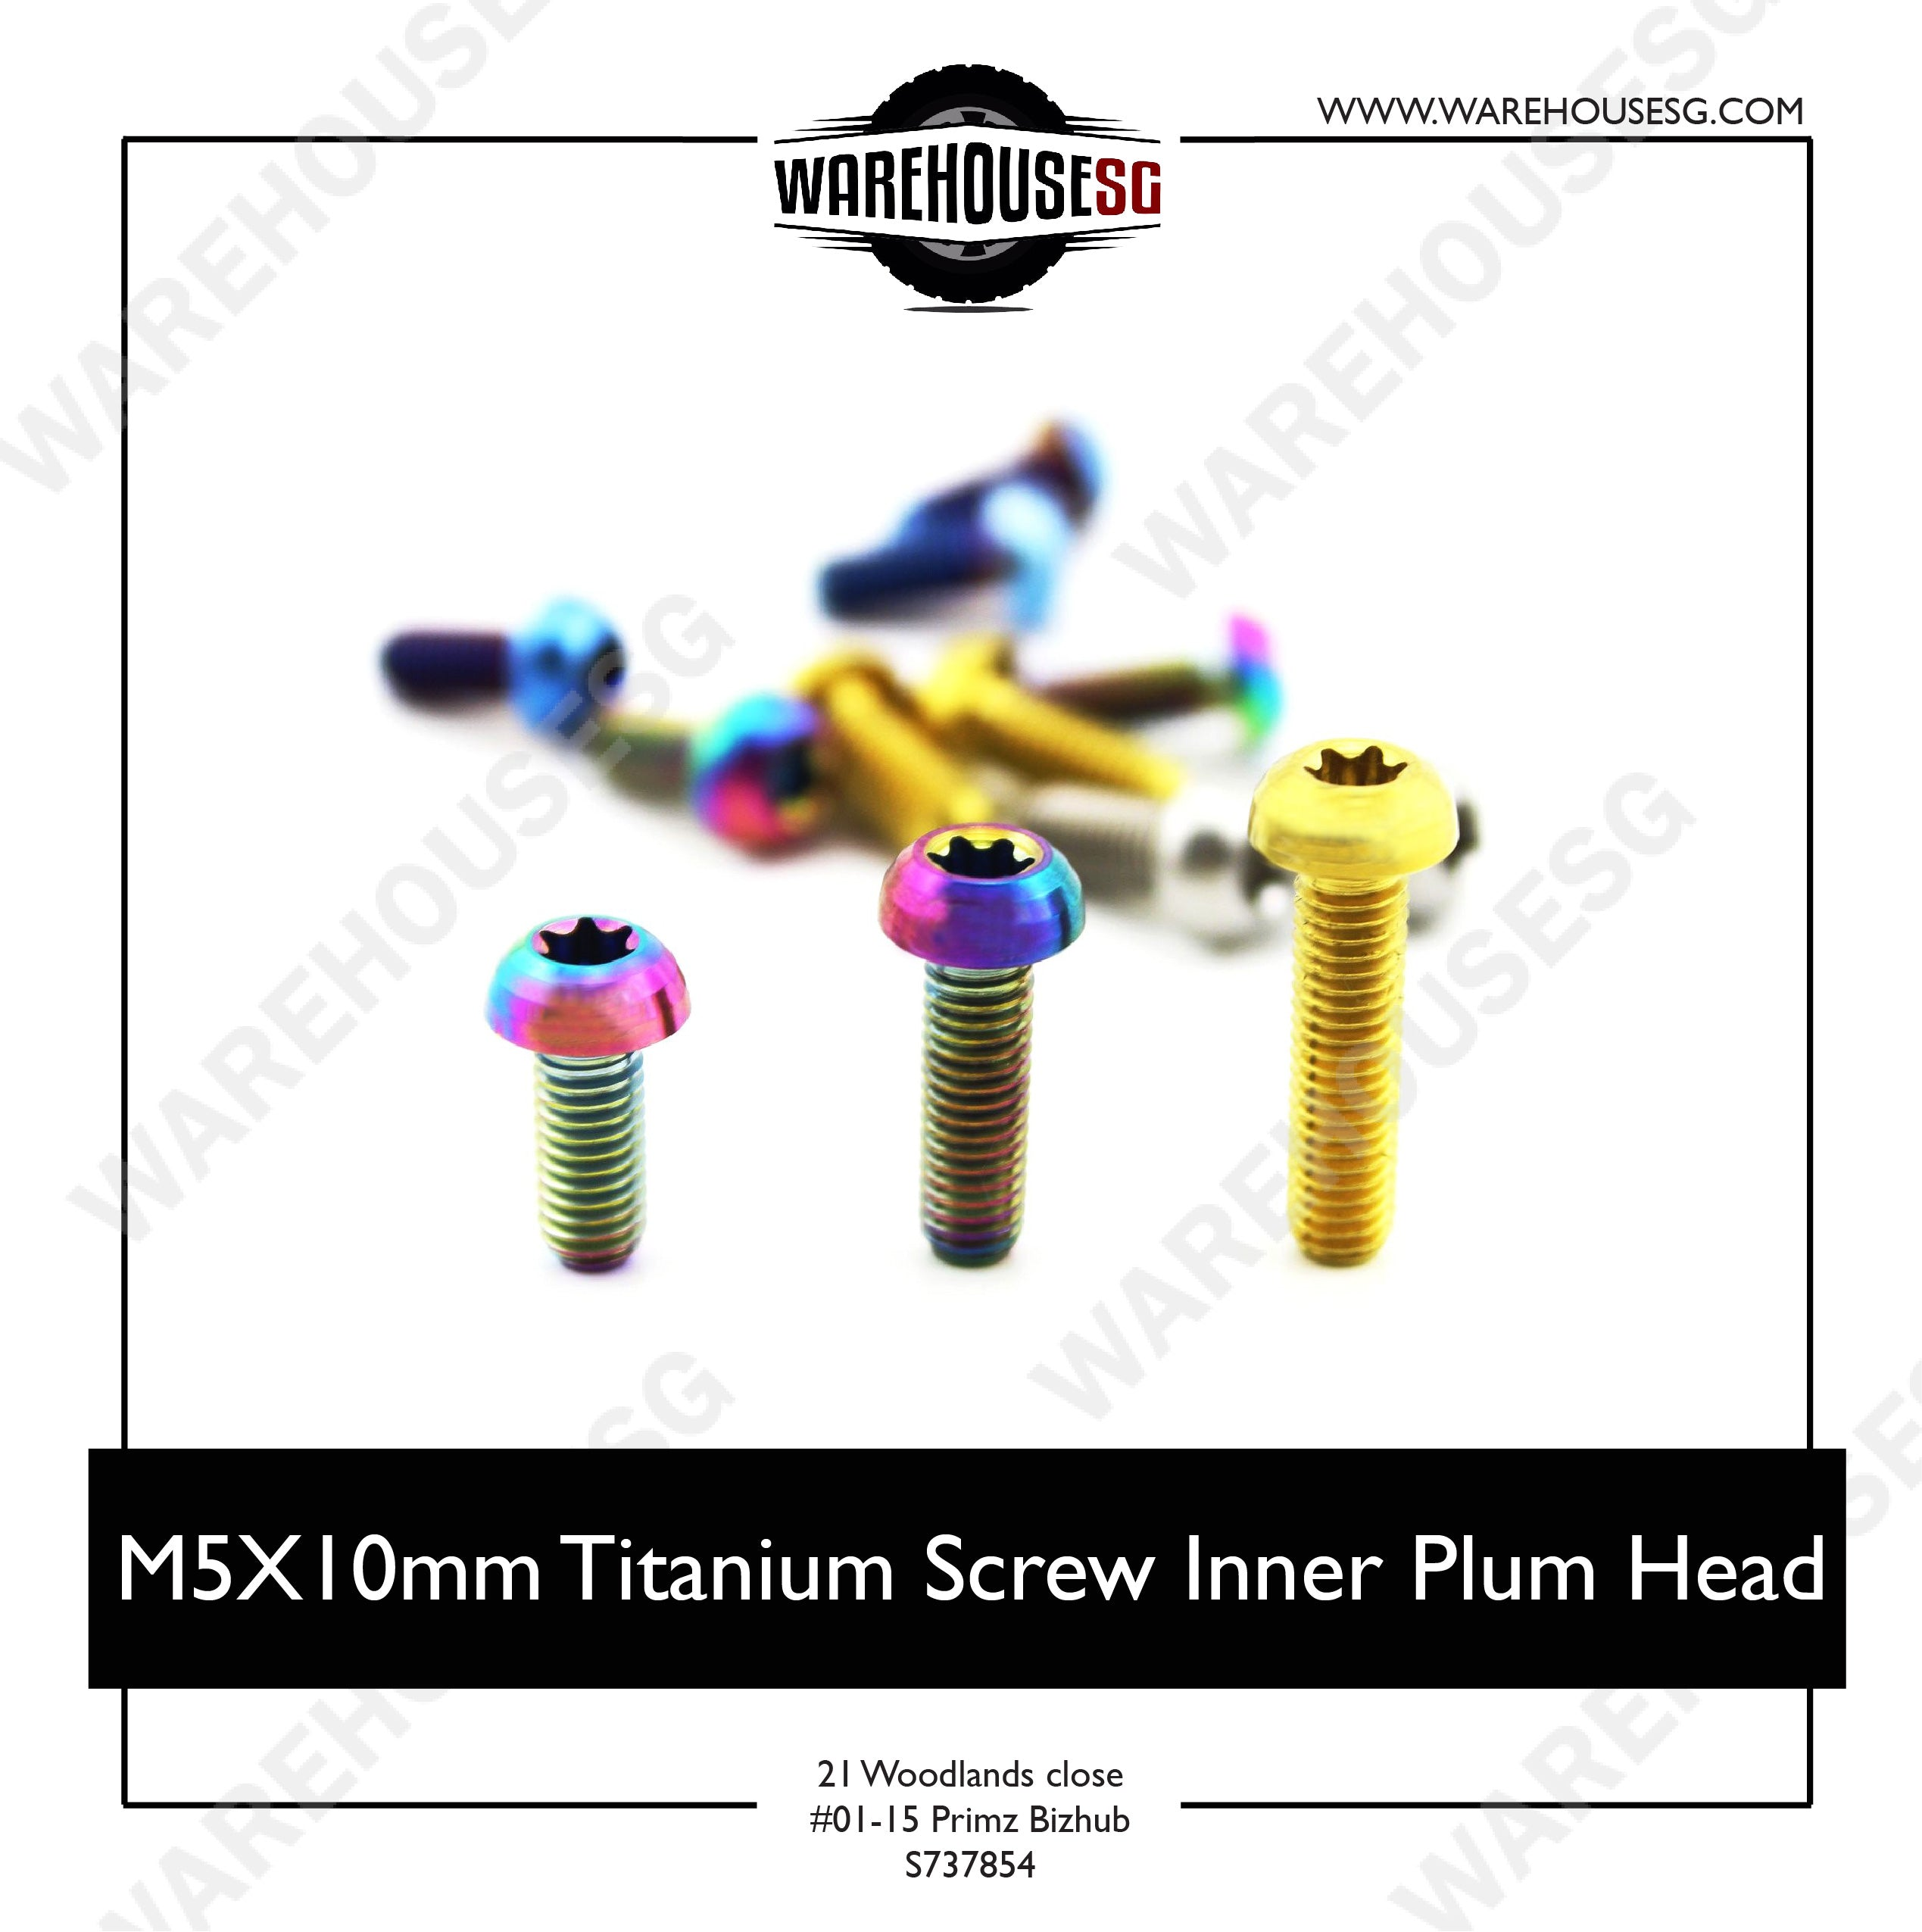 M5X10mm Titanium Screw Inner Plum Head